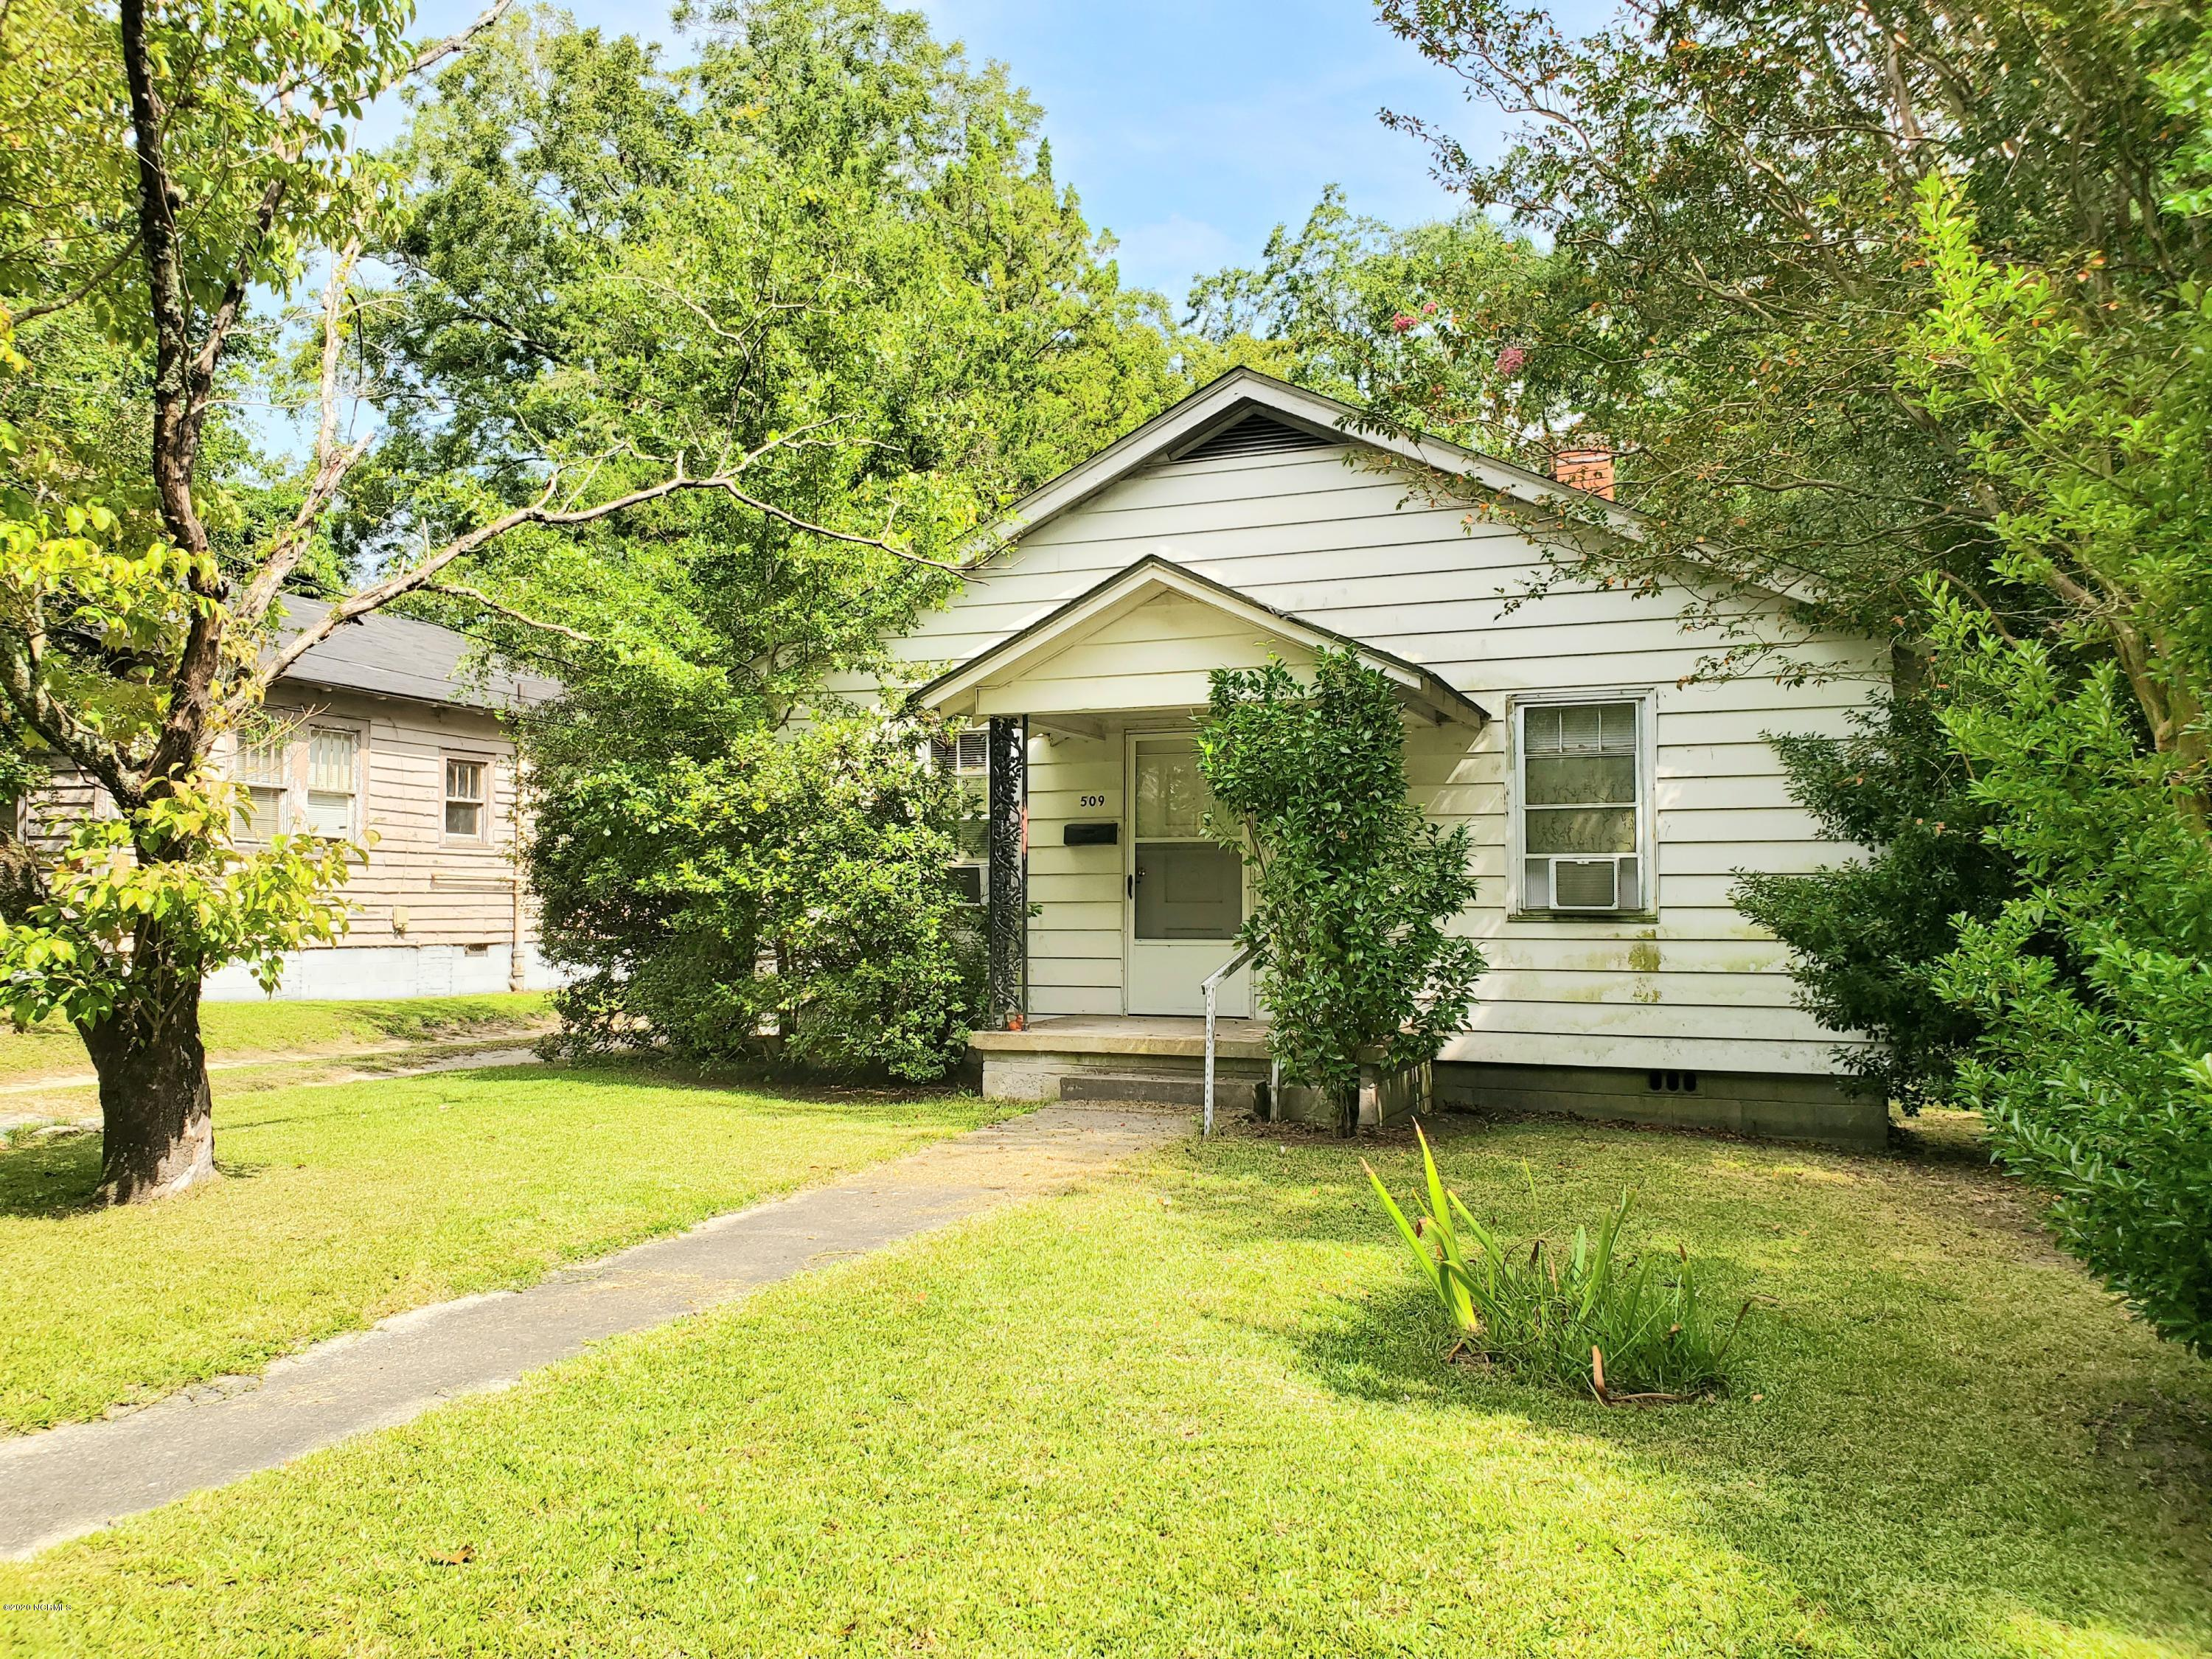 Washington, North Carolina 27889, 2 Bedrooms Bedrooms, 6 Rooms Rooms,1 BathroomBathrooms,Single family residence,For sale,100234284